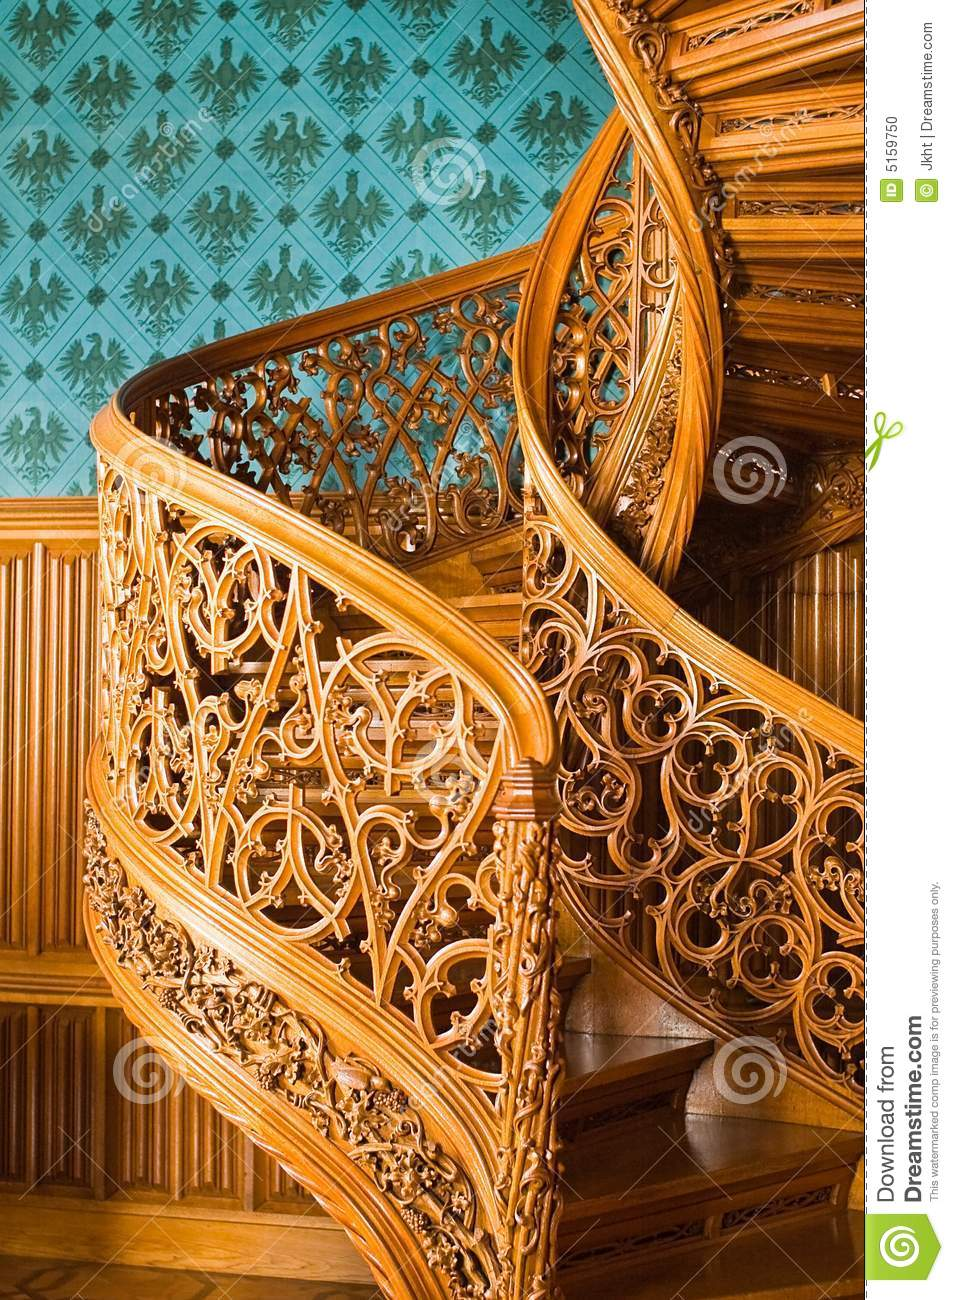 Royal Palace Old Spiral Stairs Stock Photo. Image Of Made, Masterpieces